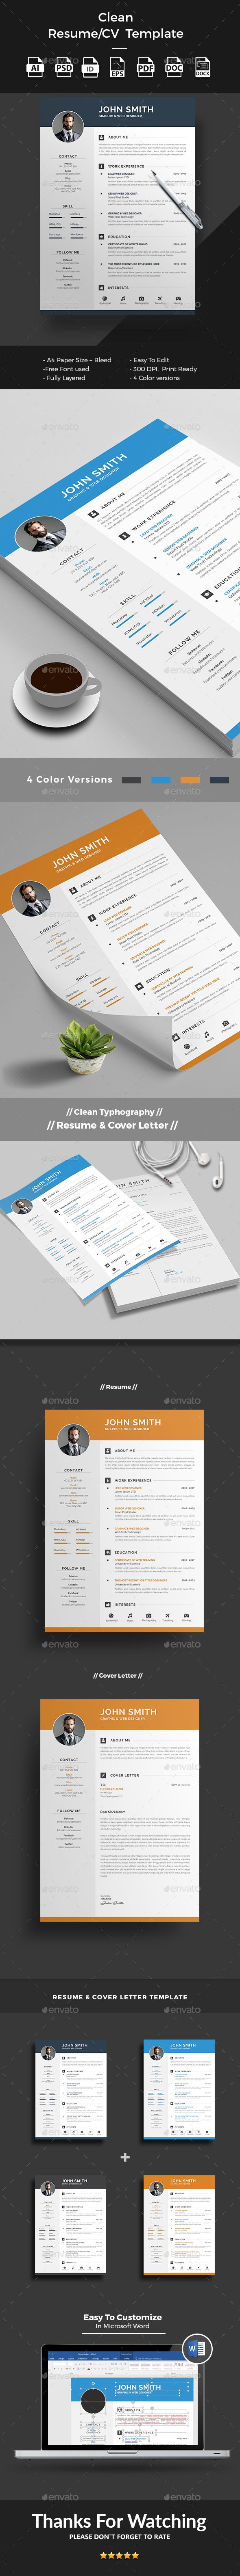 This is Resume Templates u201cResume Templatesu201d